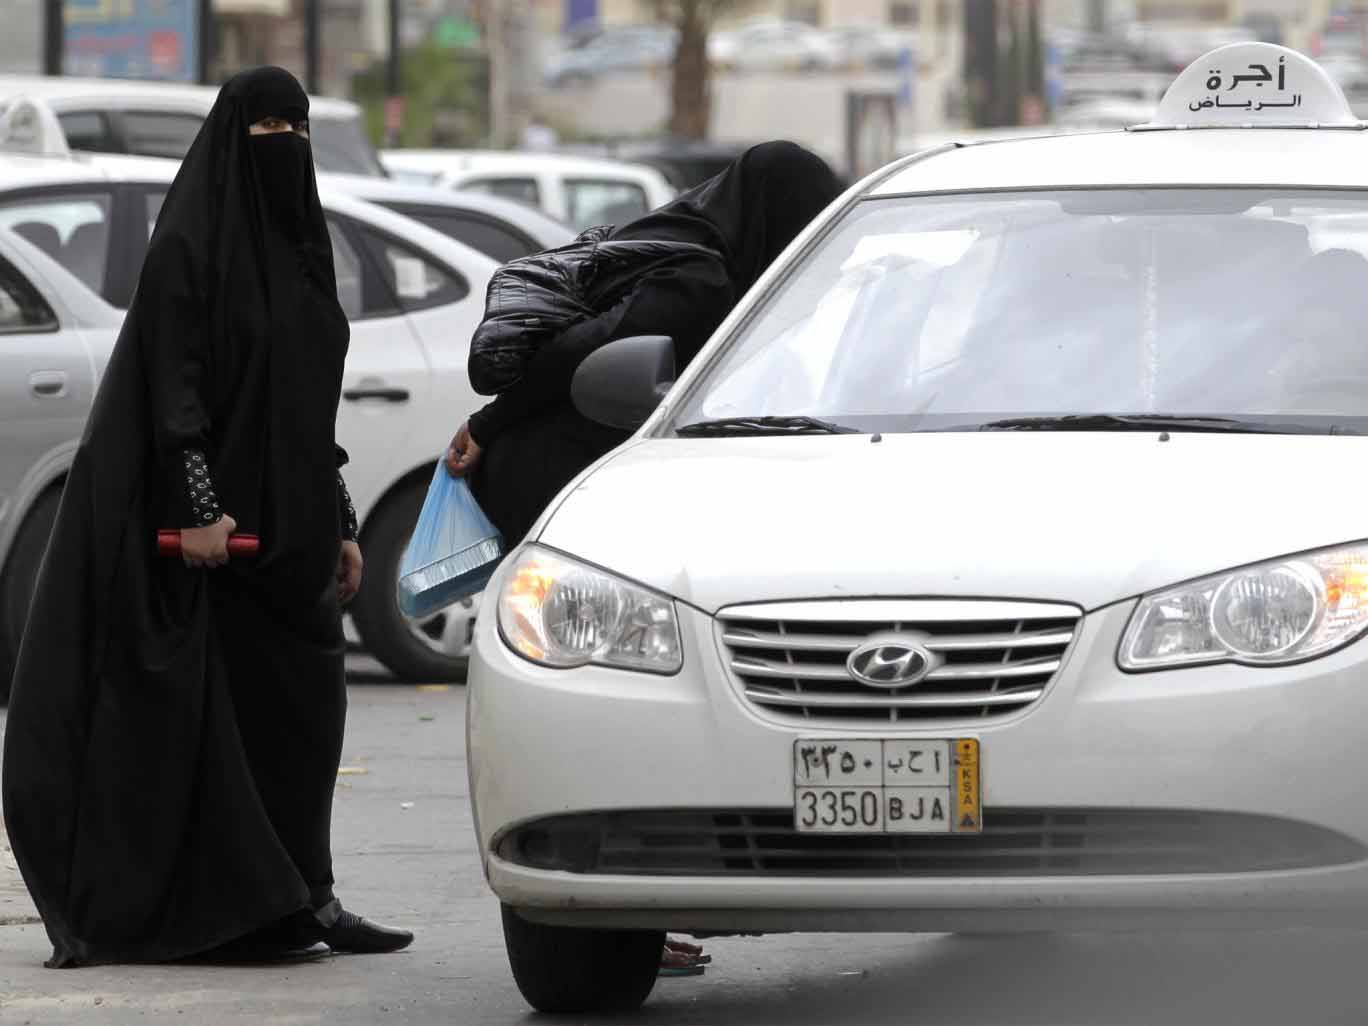 Saudi Woman's Plea For Help Exposes Risks Faced By Runaways